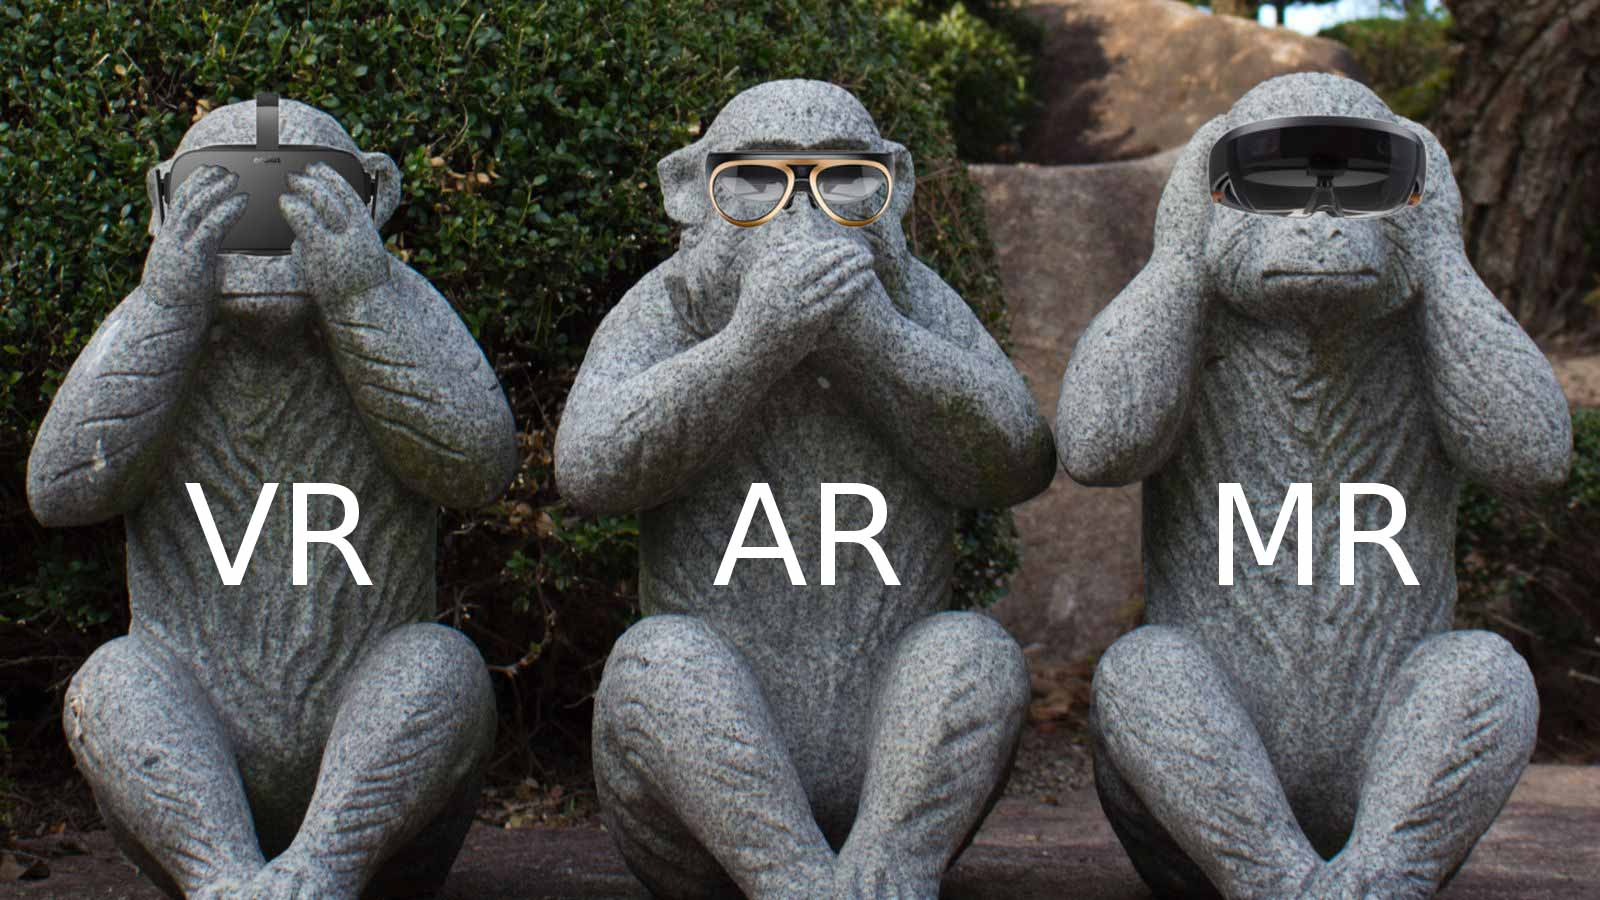 Virtual Reality, Augmented Reality, And Mixed Reality? Learn How To Tell Them Apart!